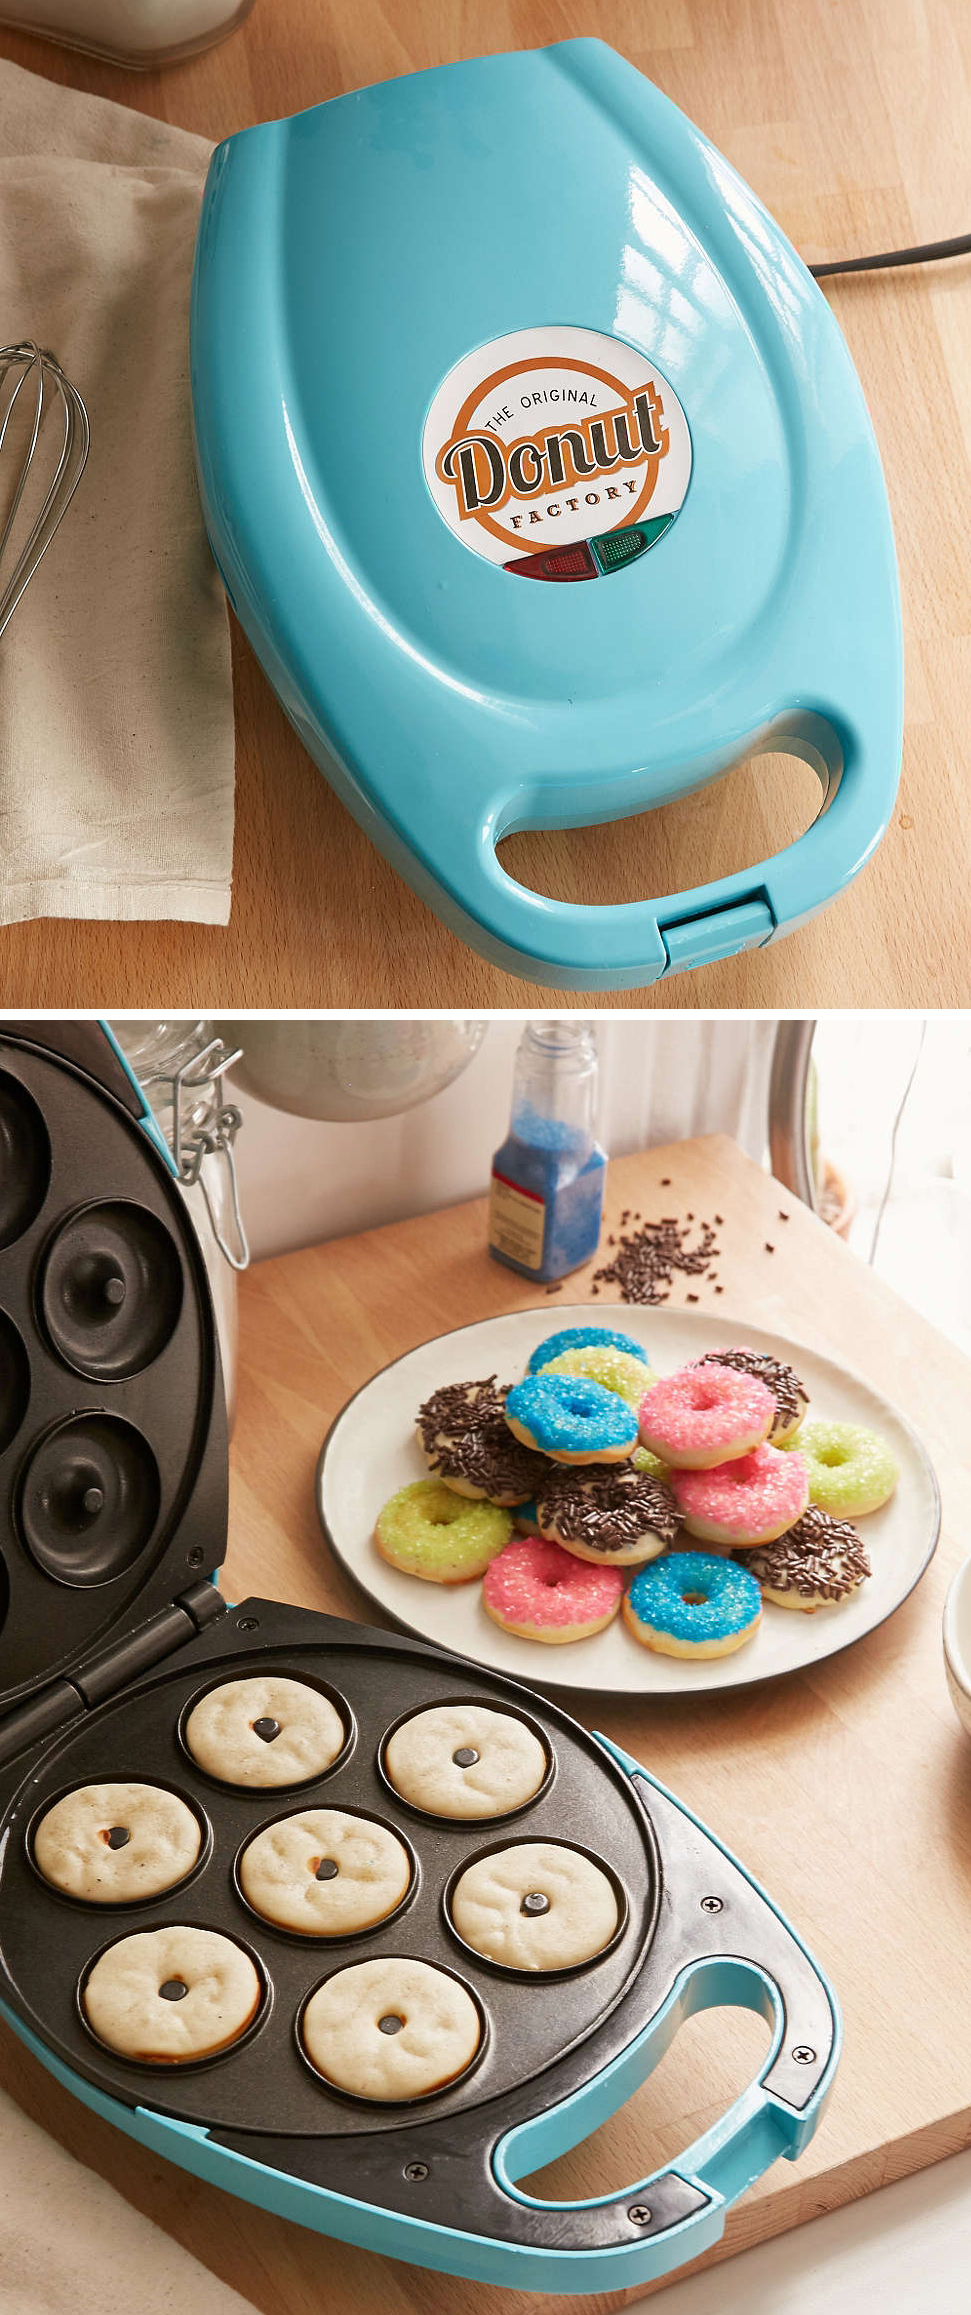 Teal Mini Donut Maker